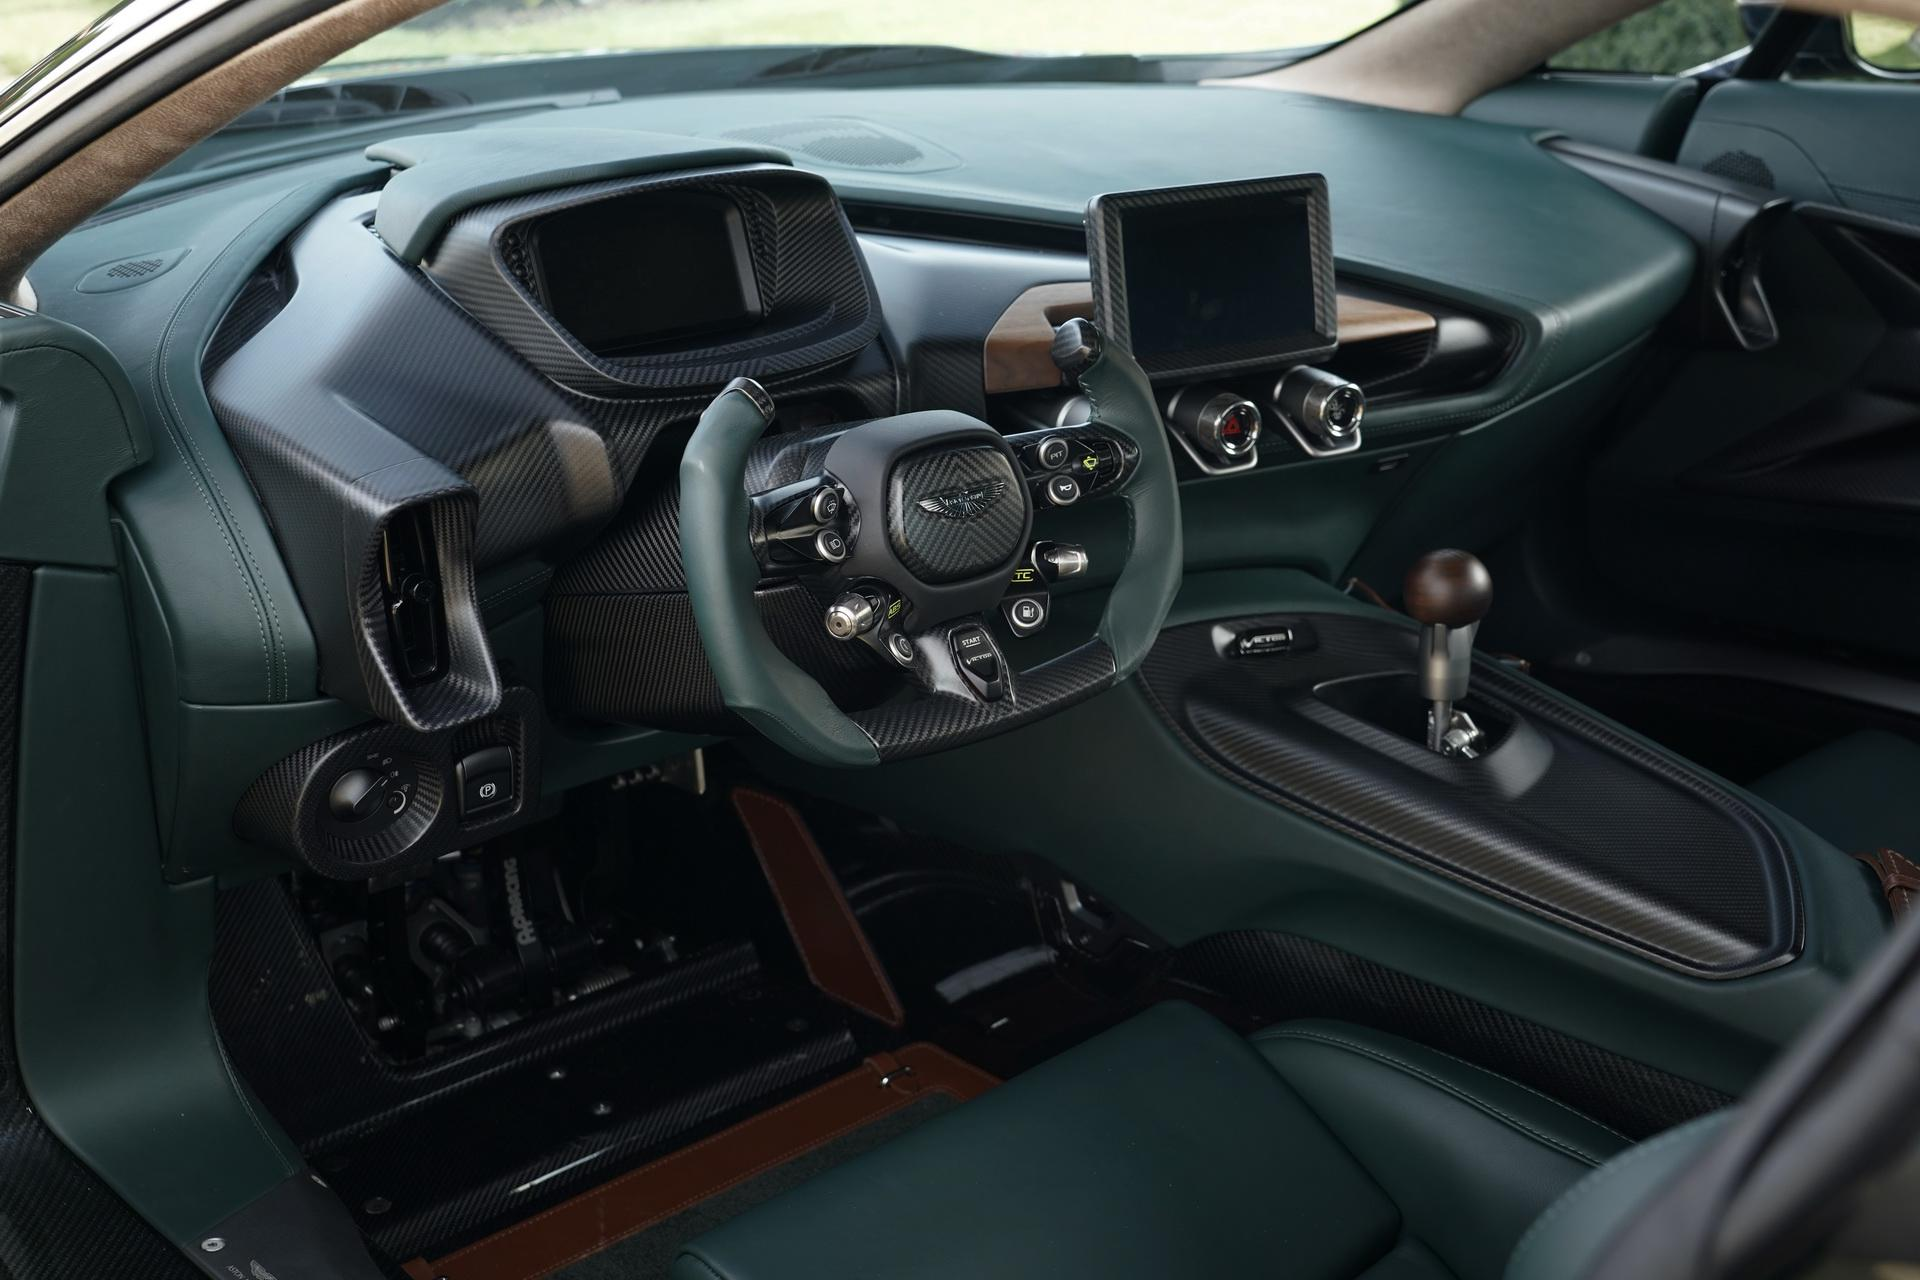 Aston Martin Victor interior w/ 6-speed manual transmission